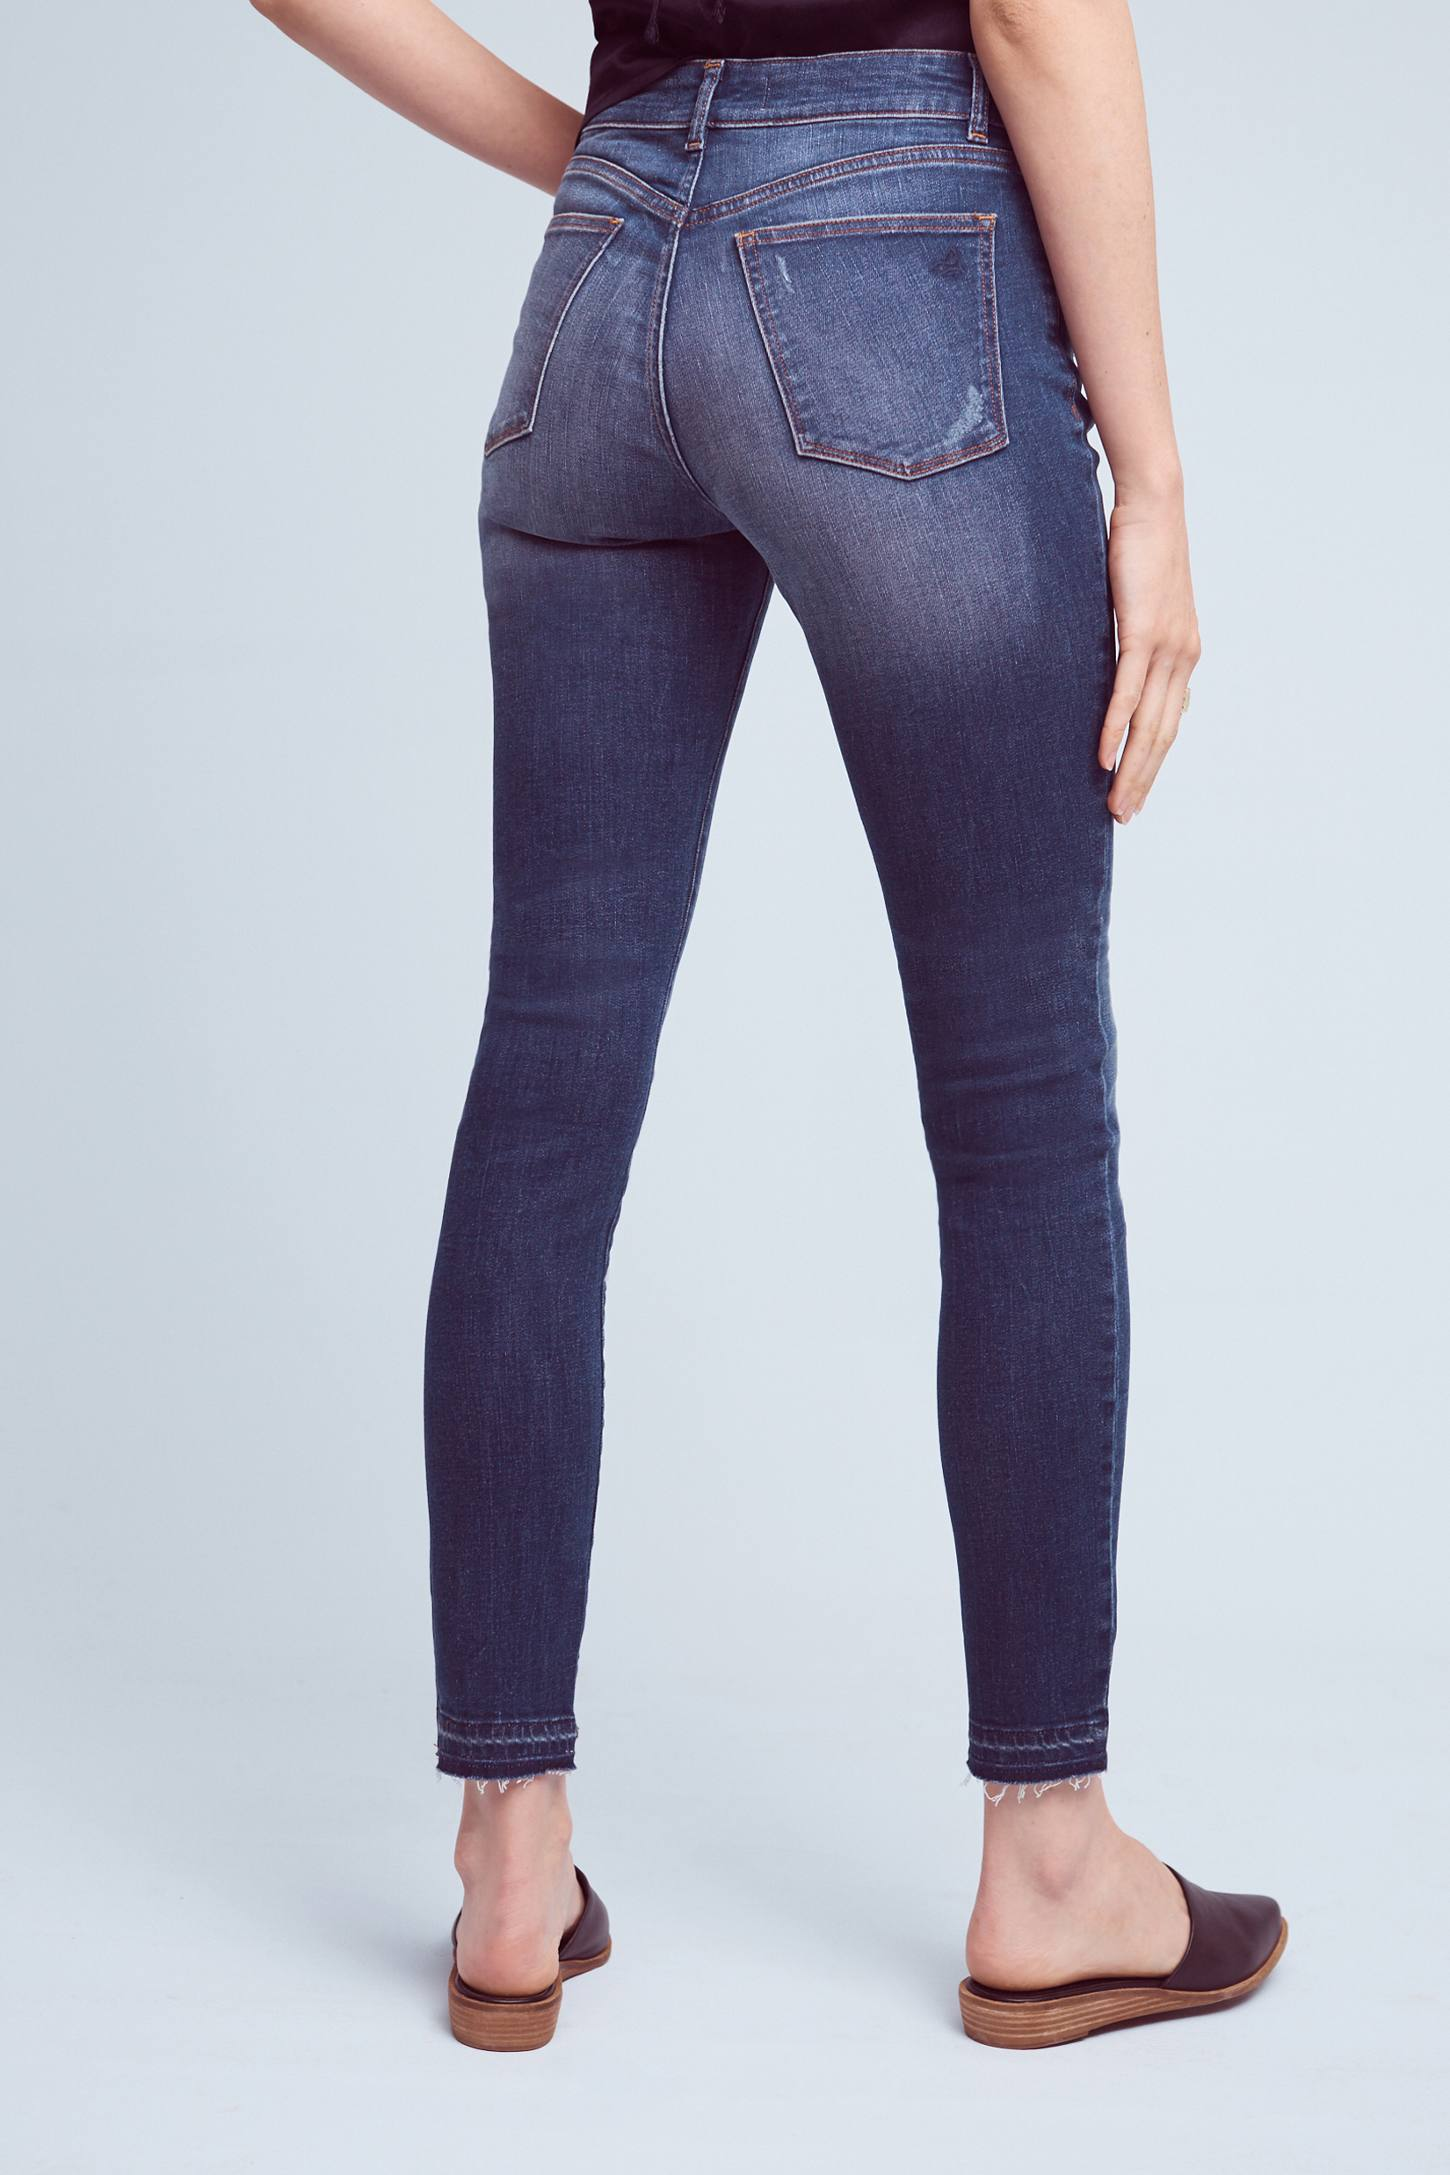 Slide View: 4: DL1961 Ryan High-Rise Skinny Petite Jeans